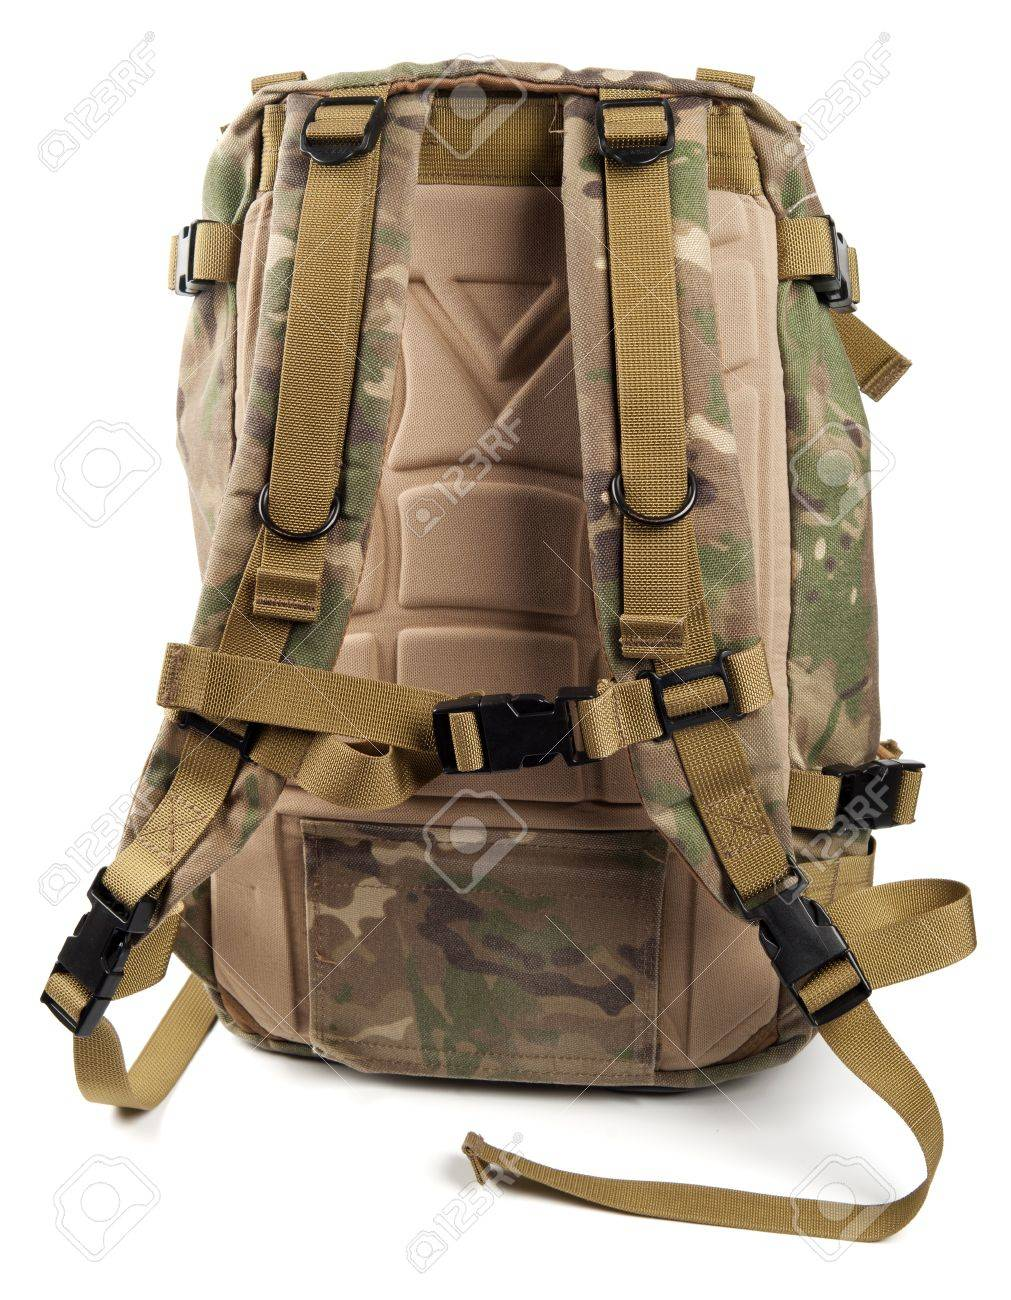 Military camouflage backpack isolated on white - 10027878